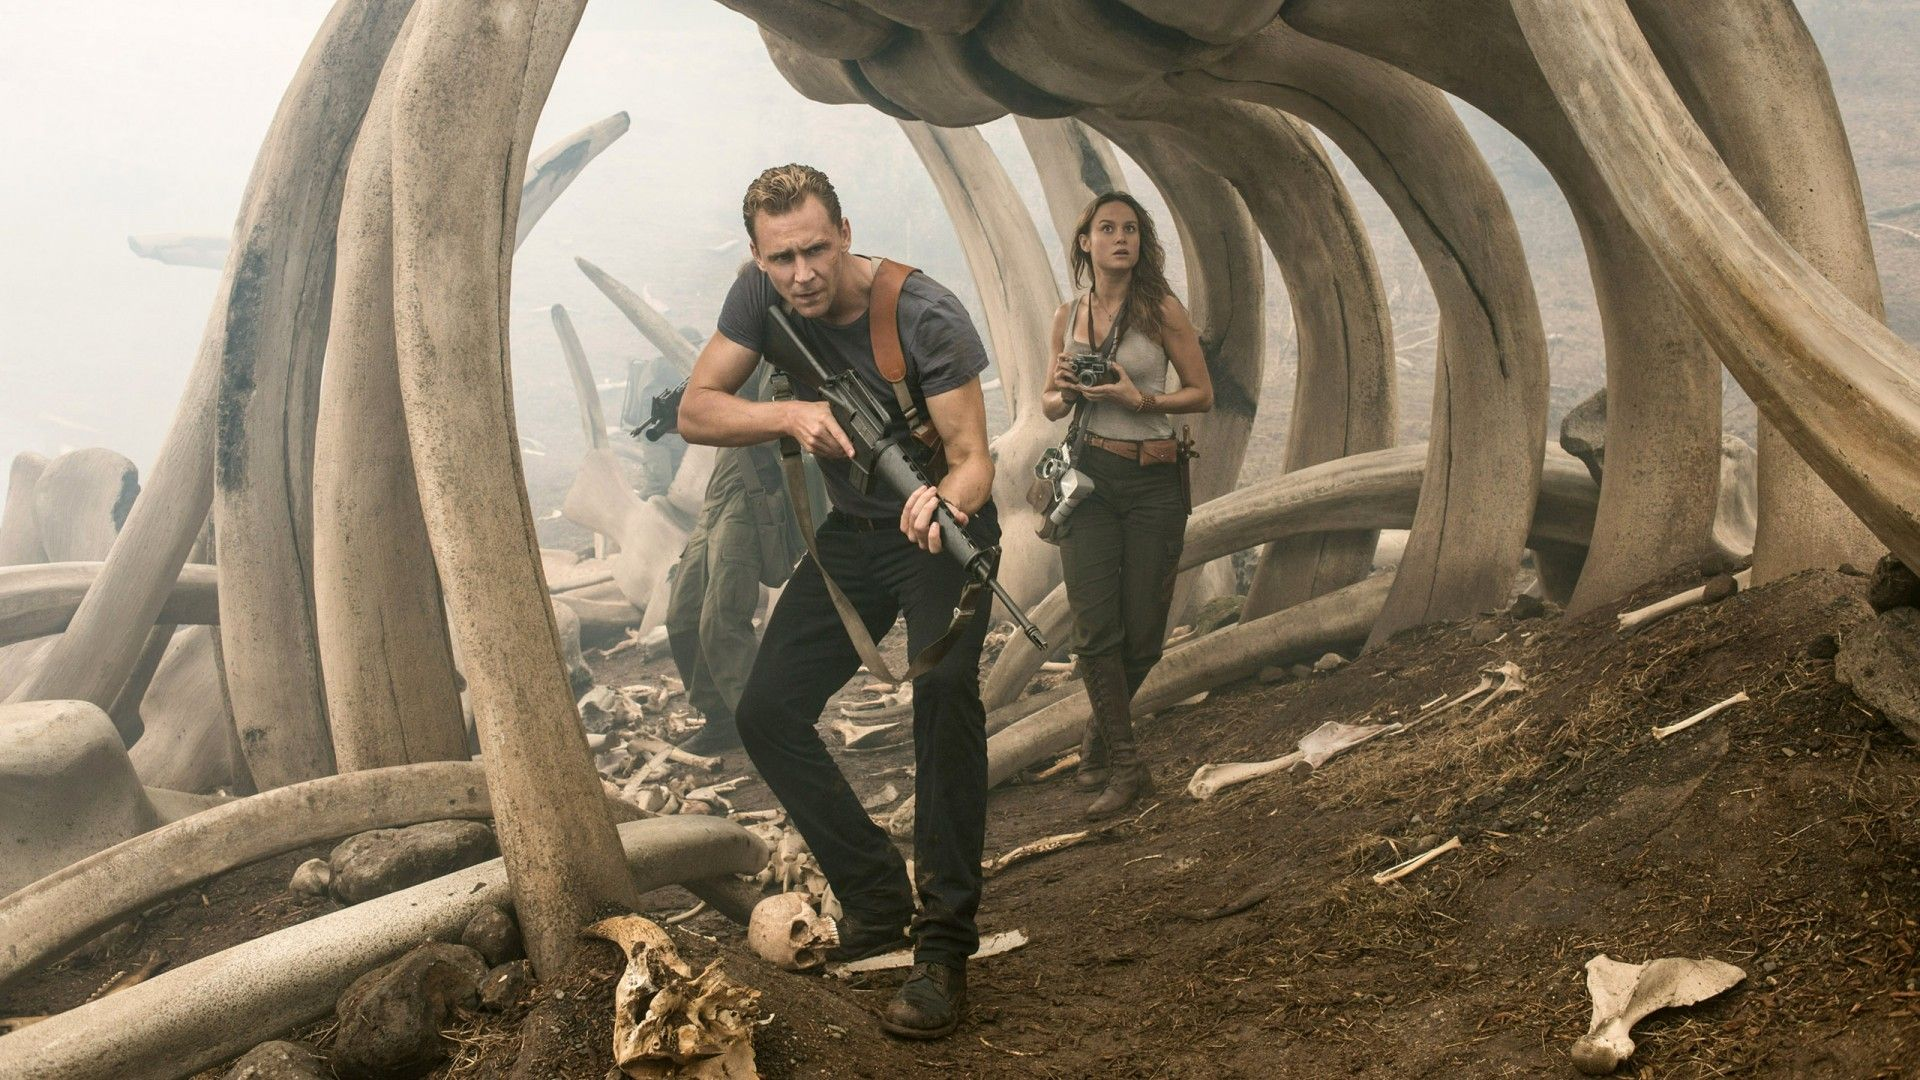 Kong: Skull Island (With images) | Skull island, Action ...